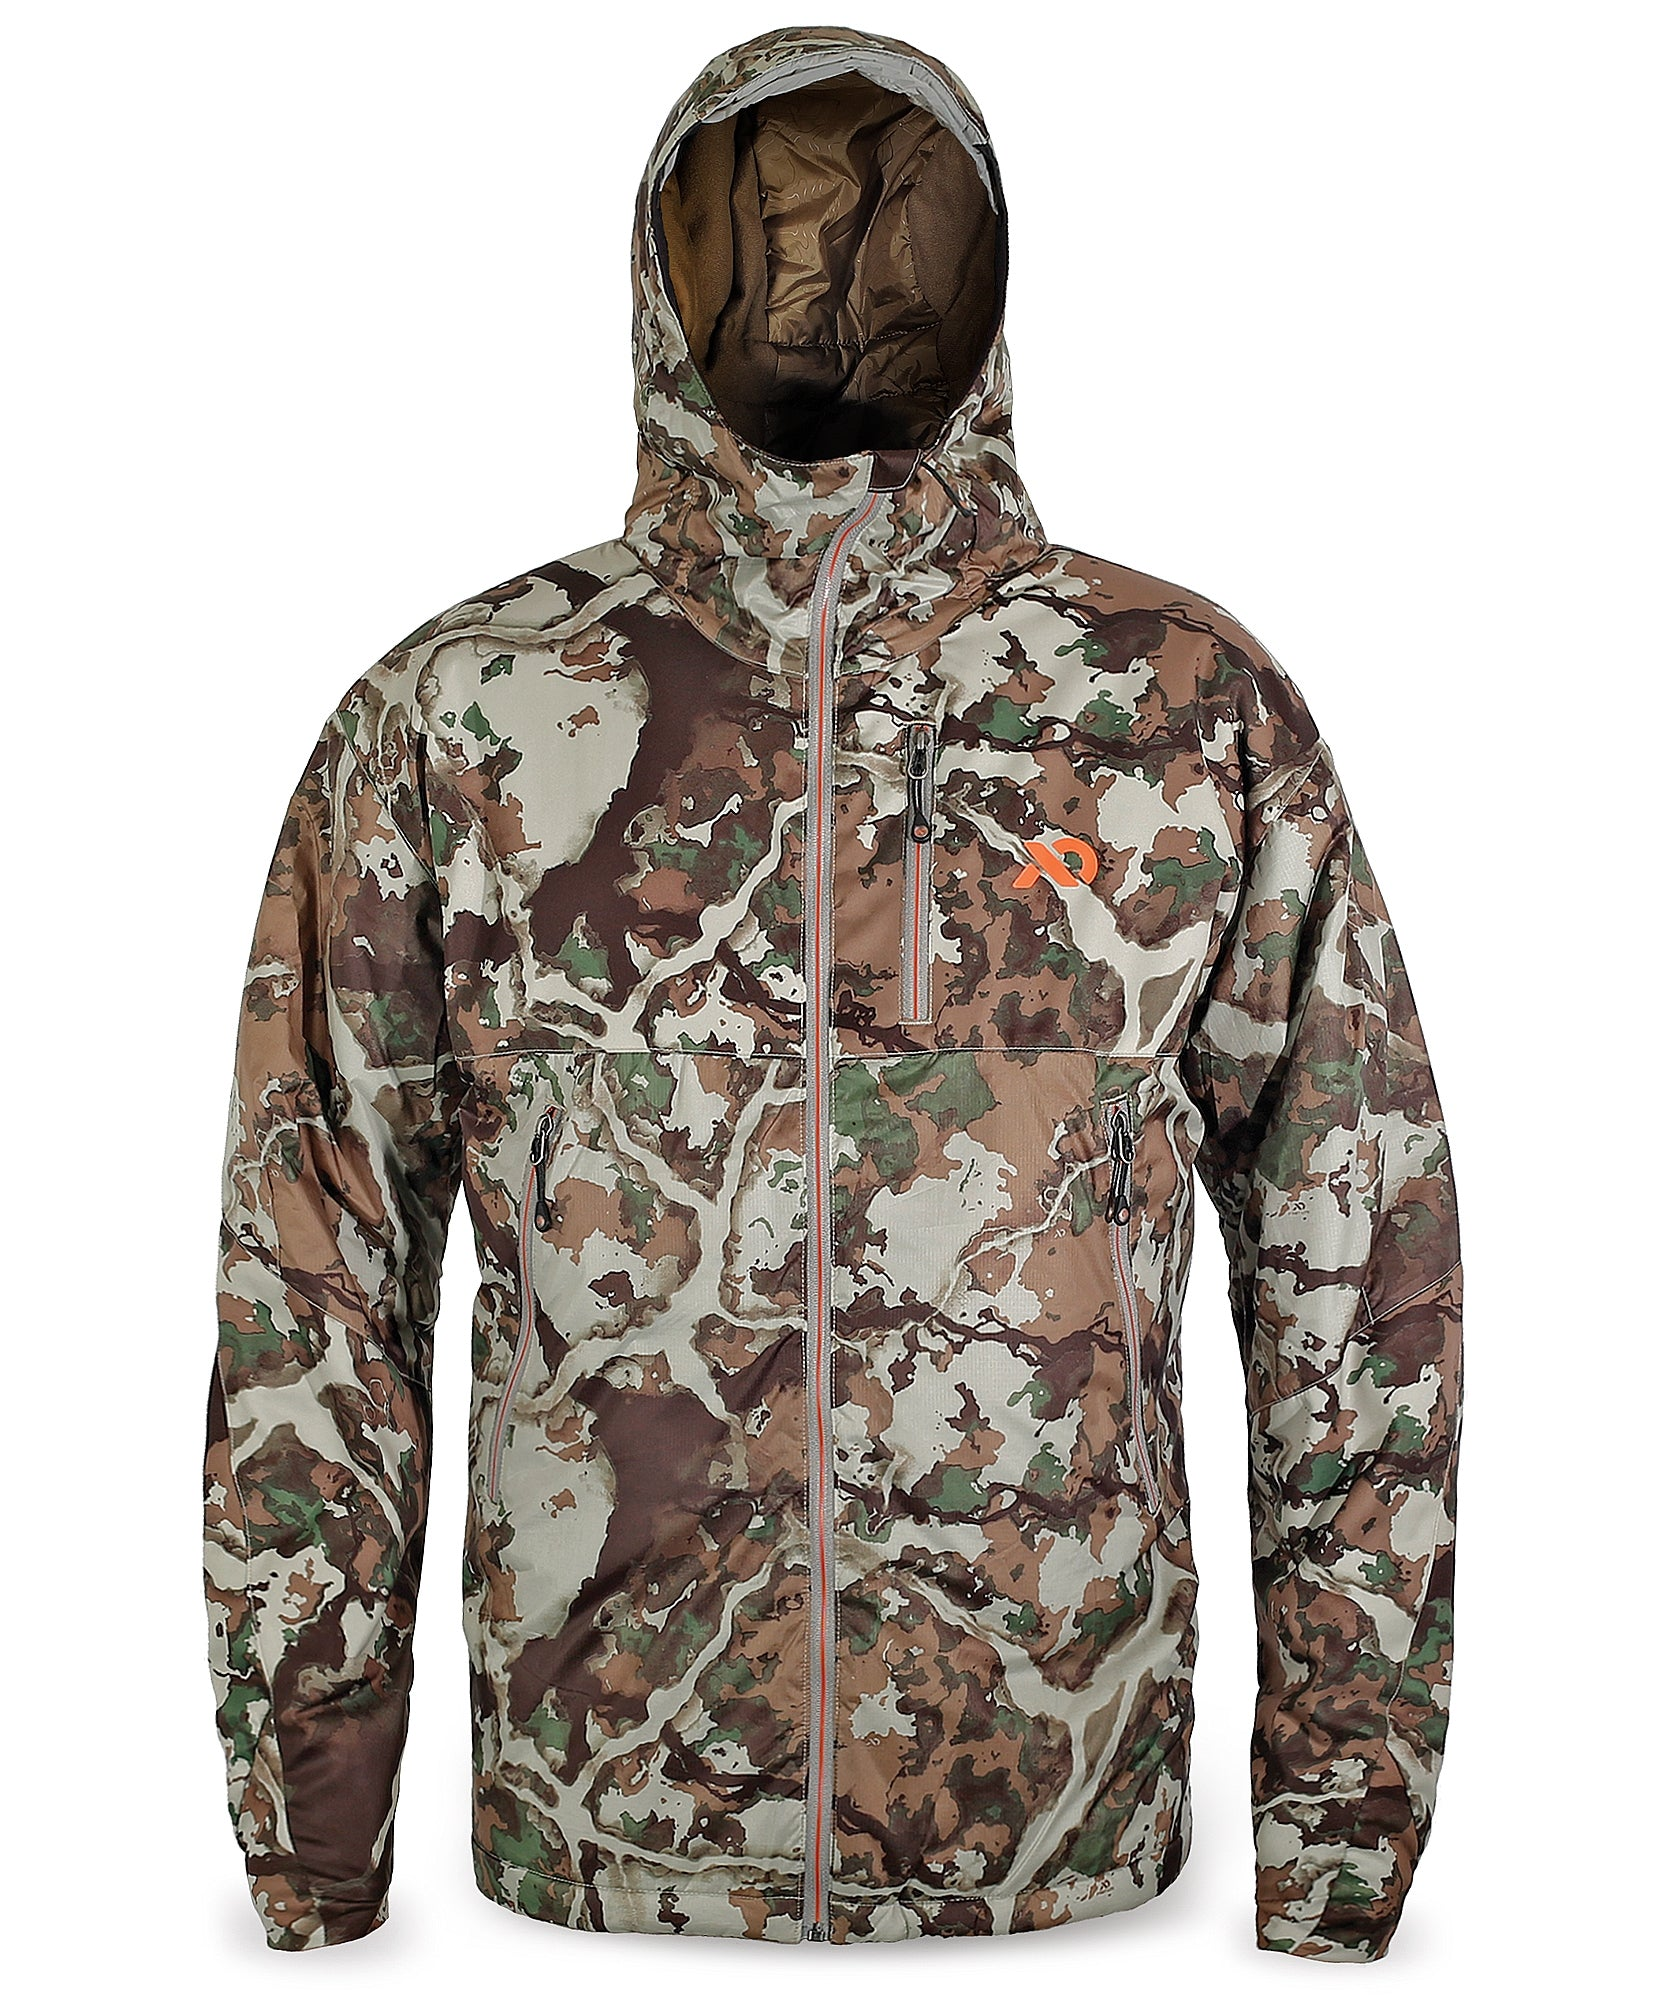 0e6b70d8d Uncompahgre Puffy Insulated Jacket – First Lite Performance Hunting